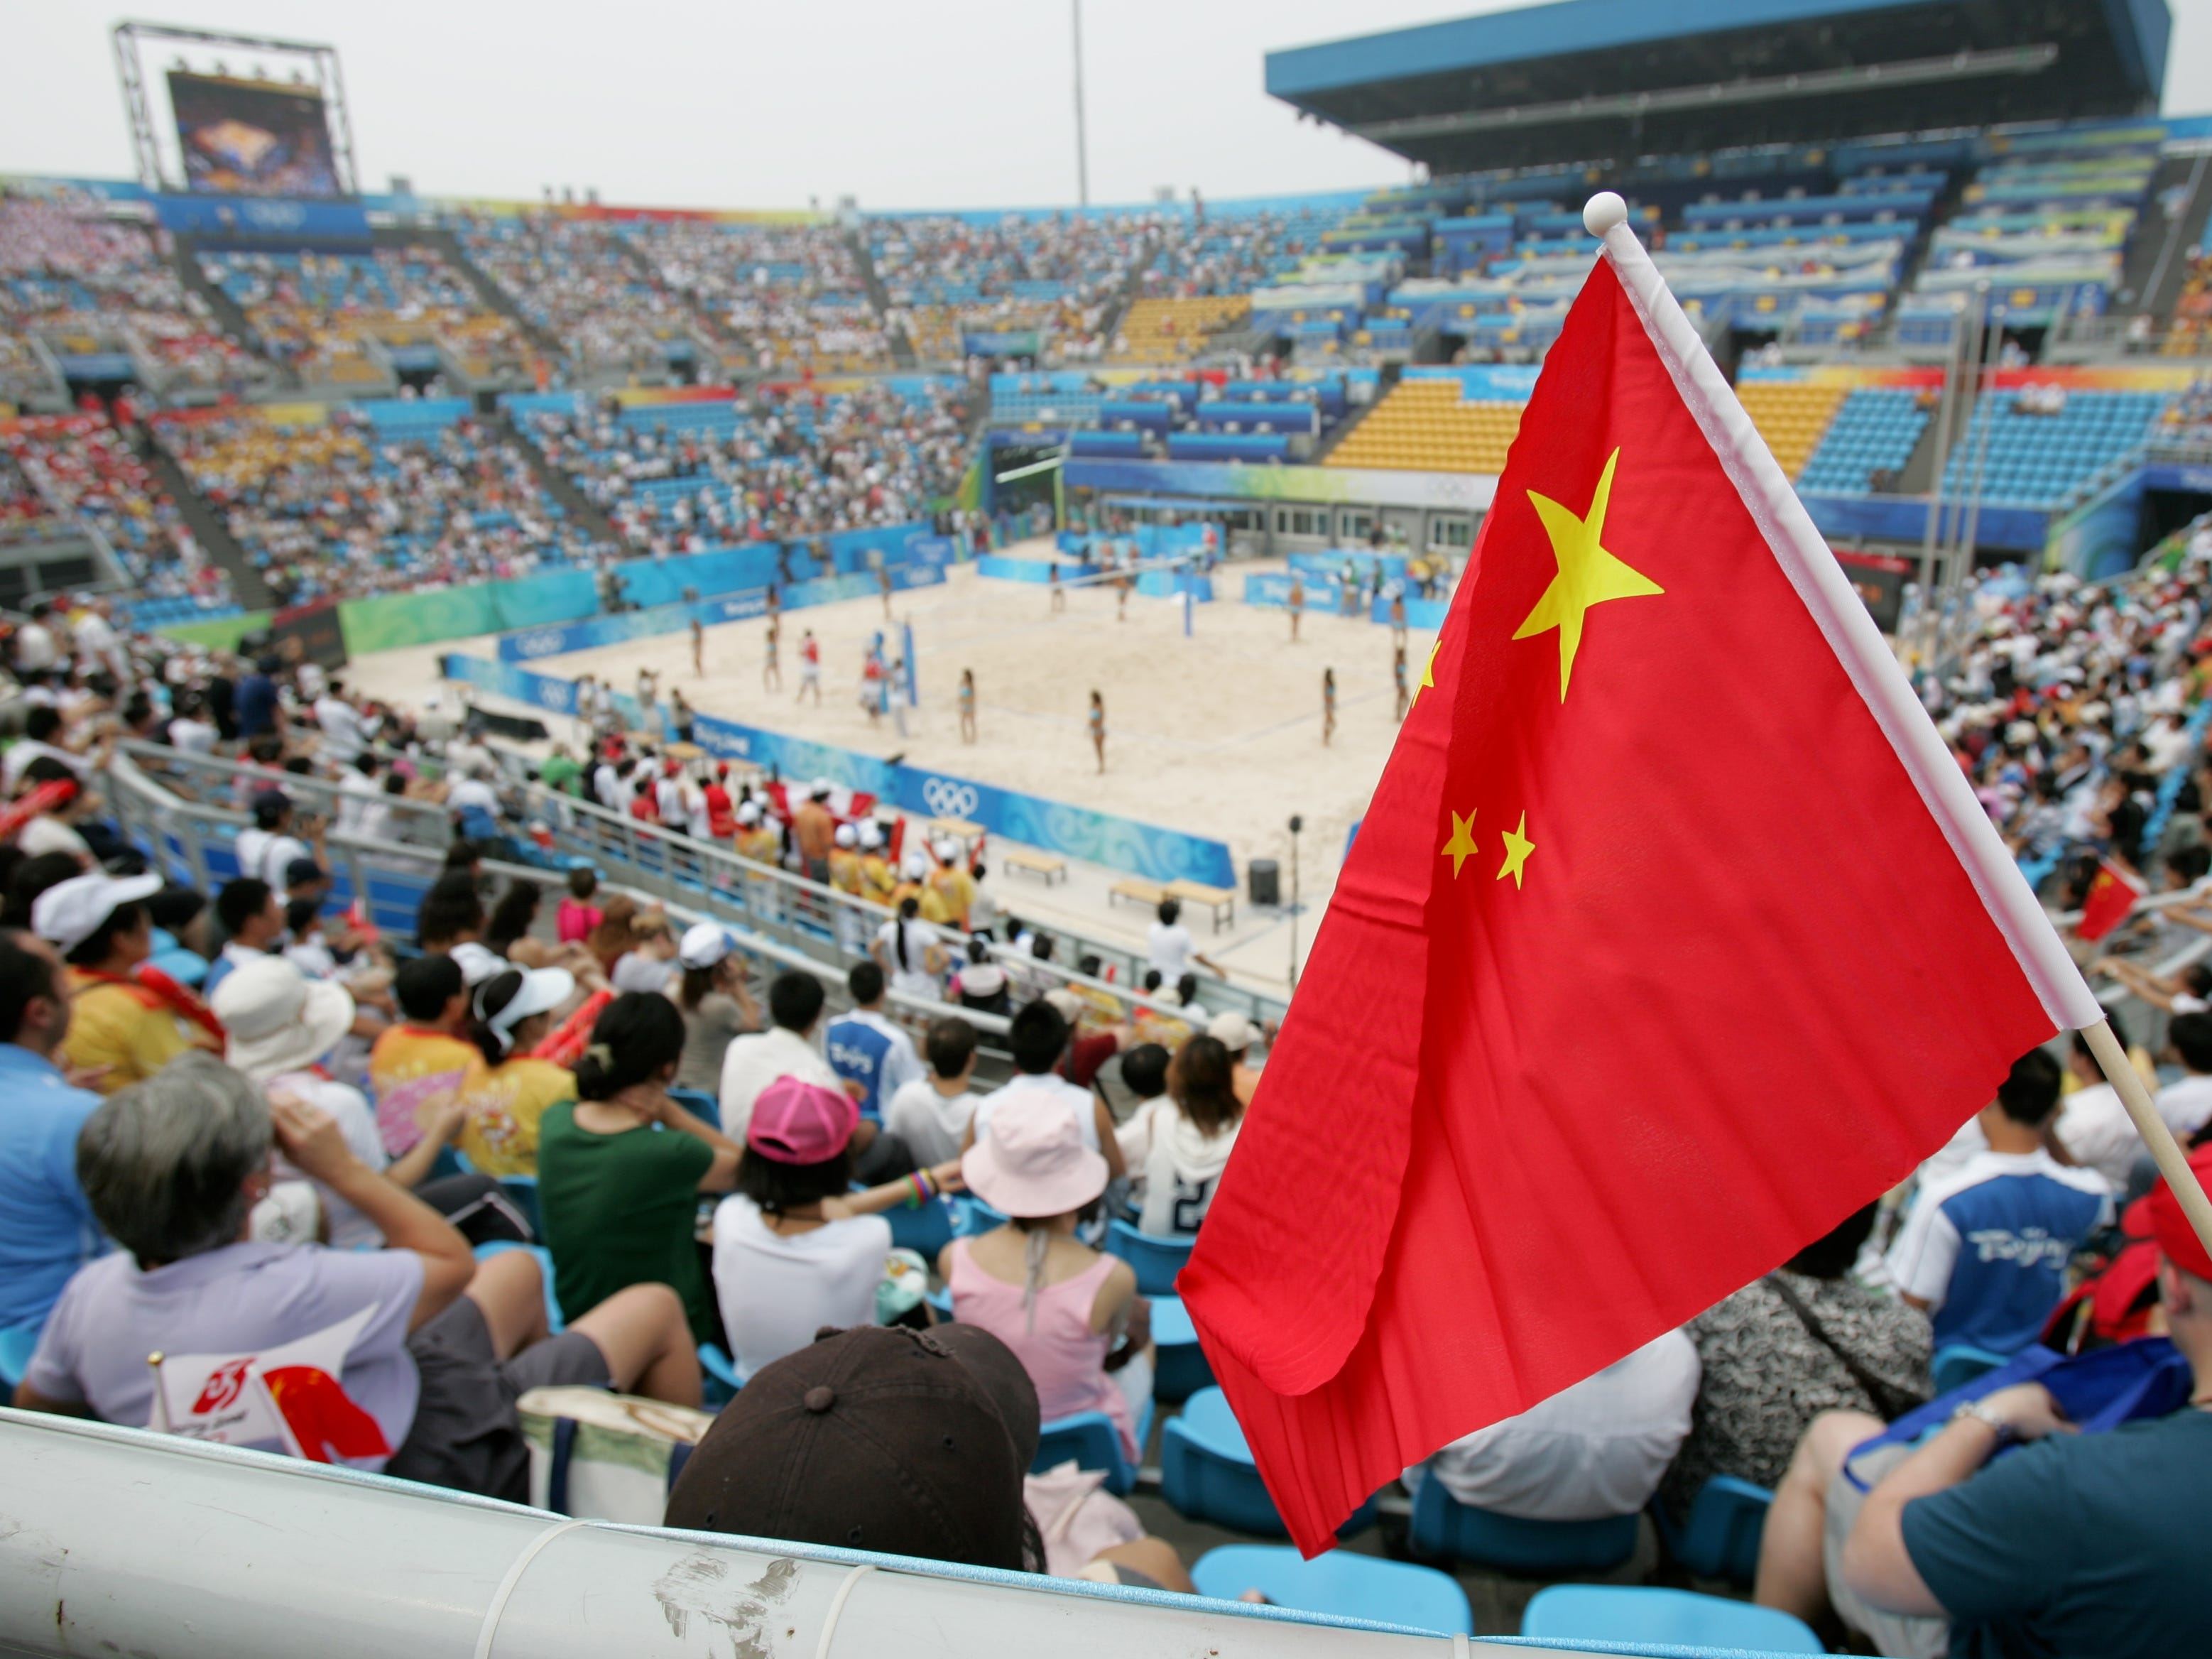 The beach volleyball venue in 2008.